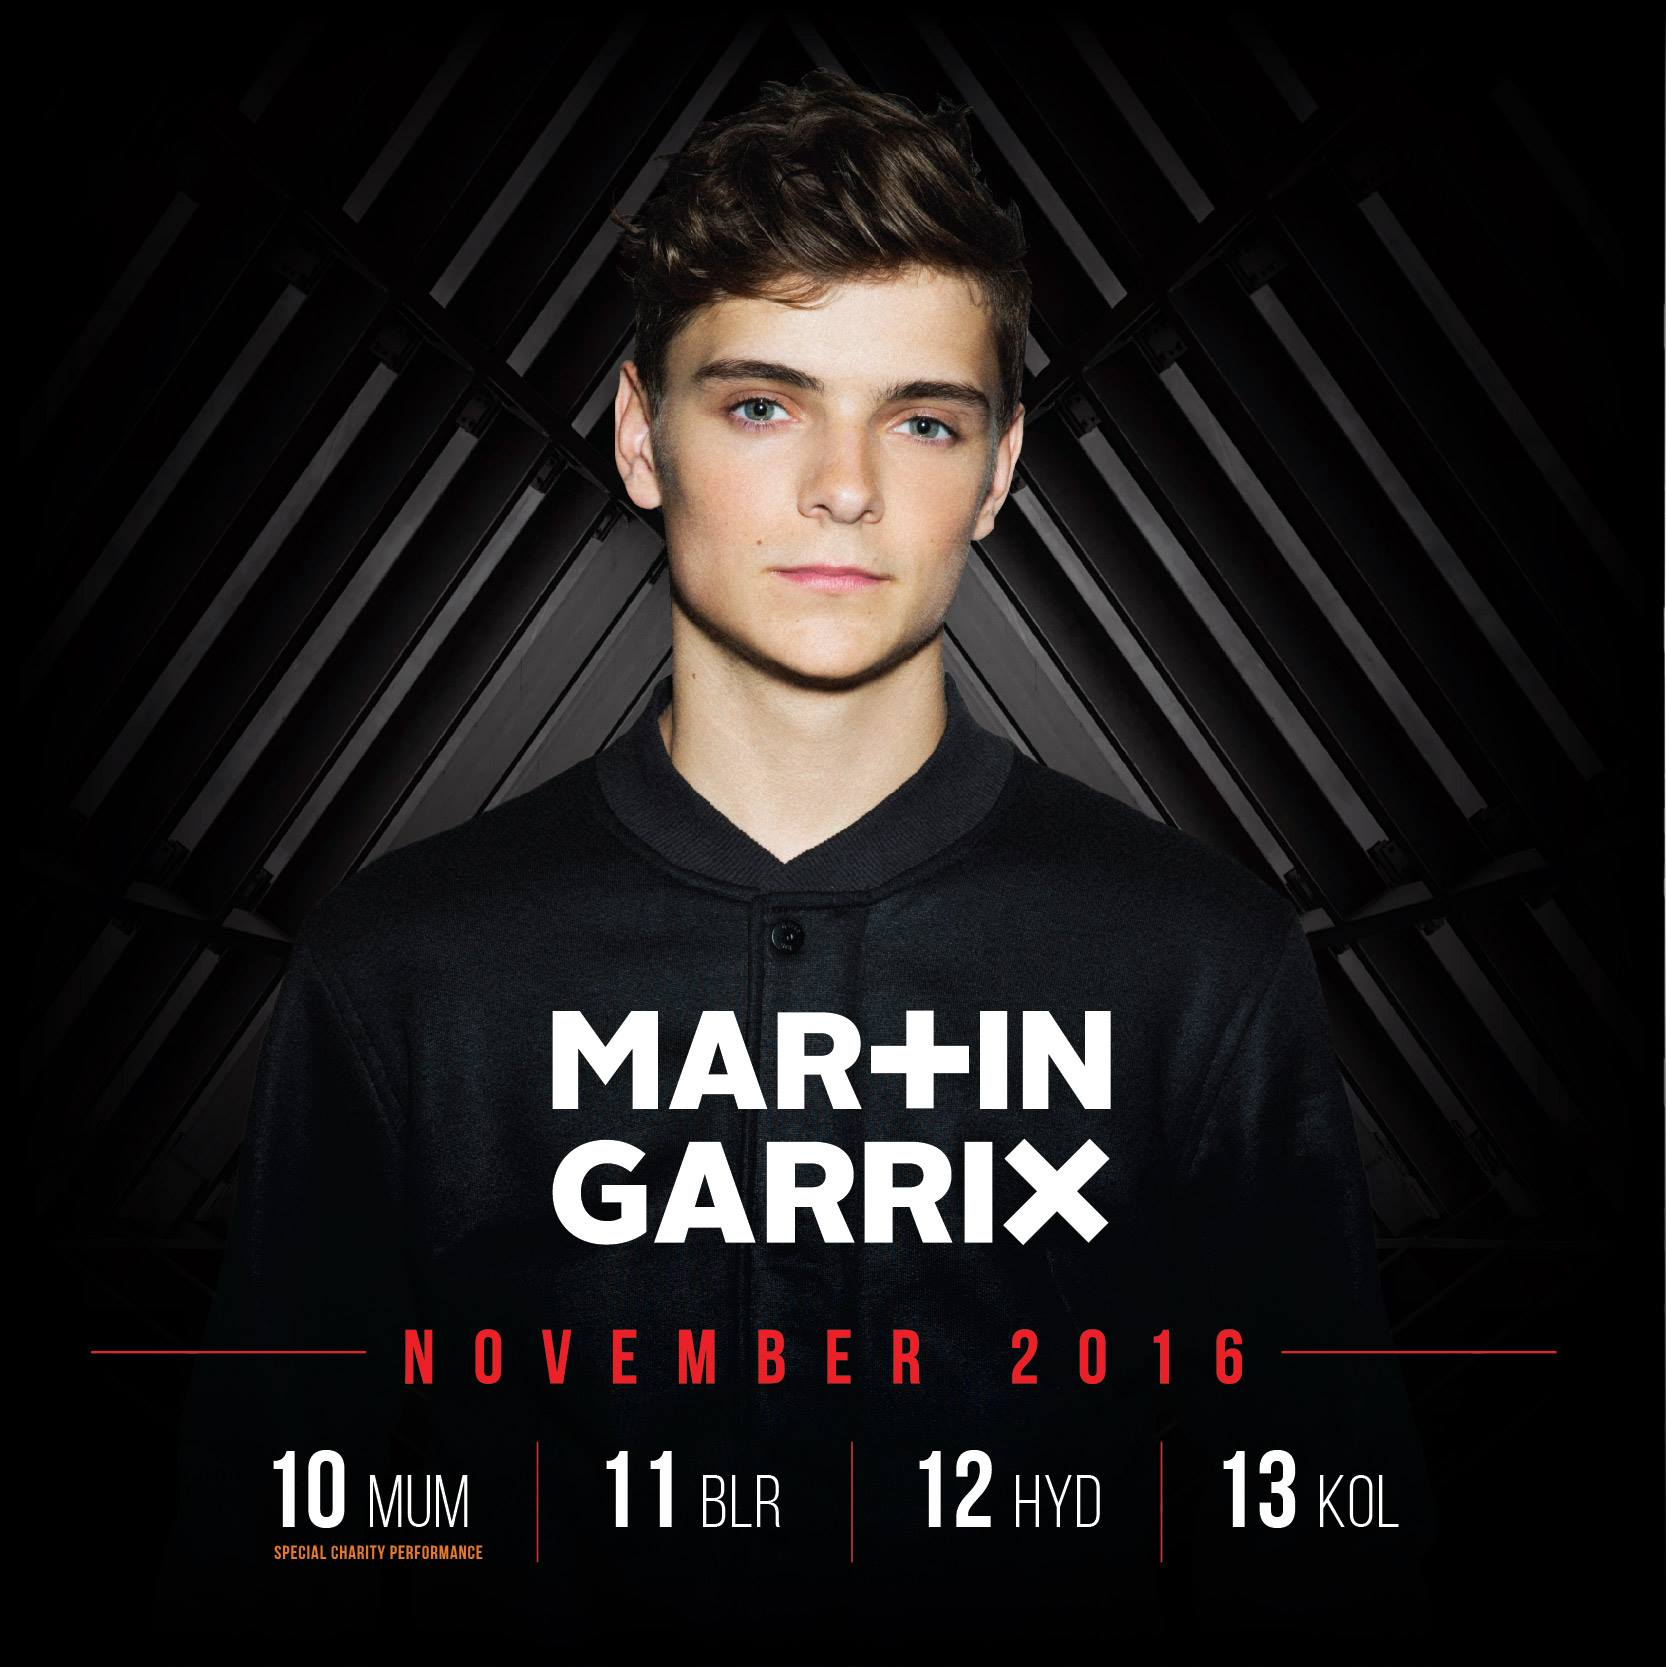 martin-garrix-weekend-4-shows-in-4-days